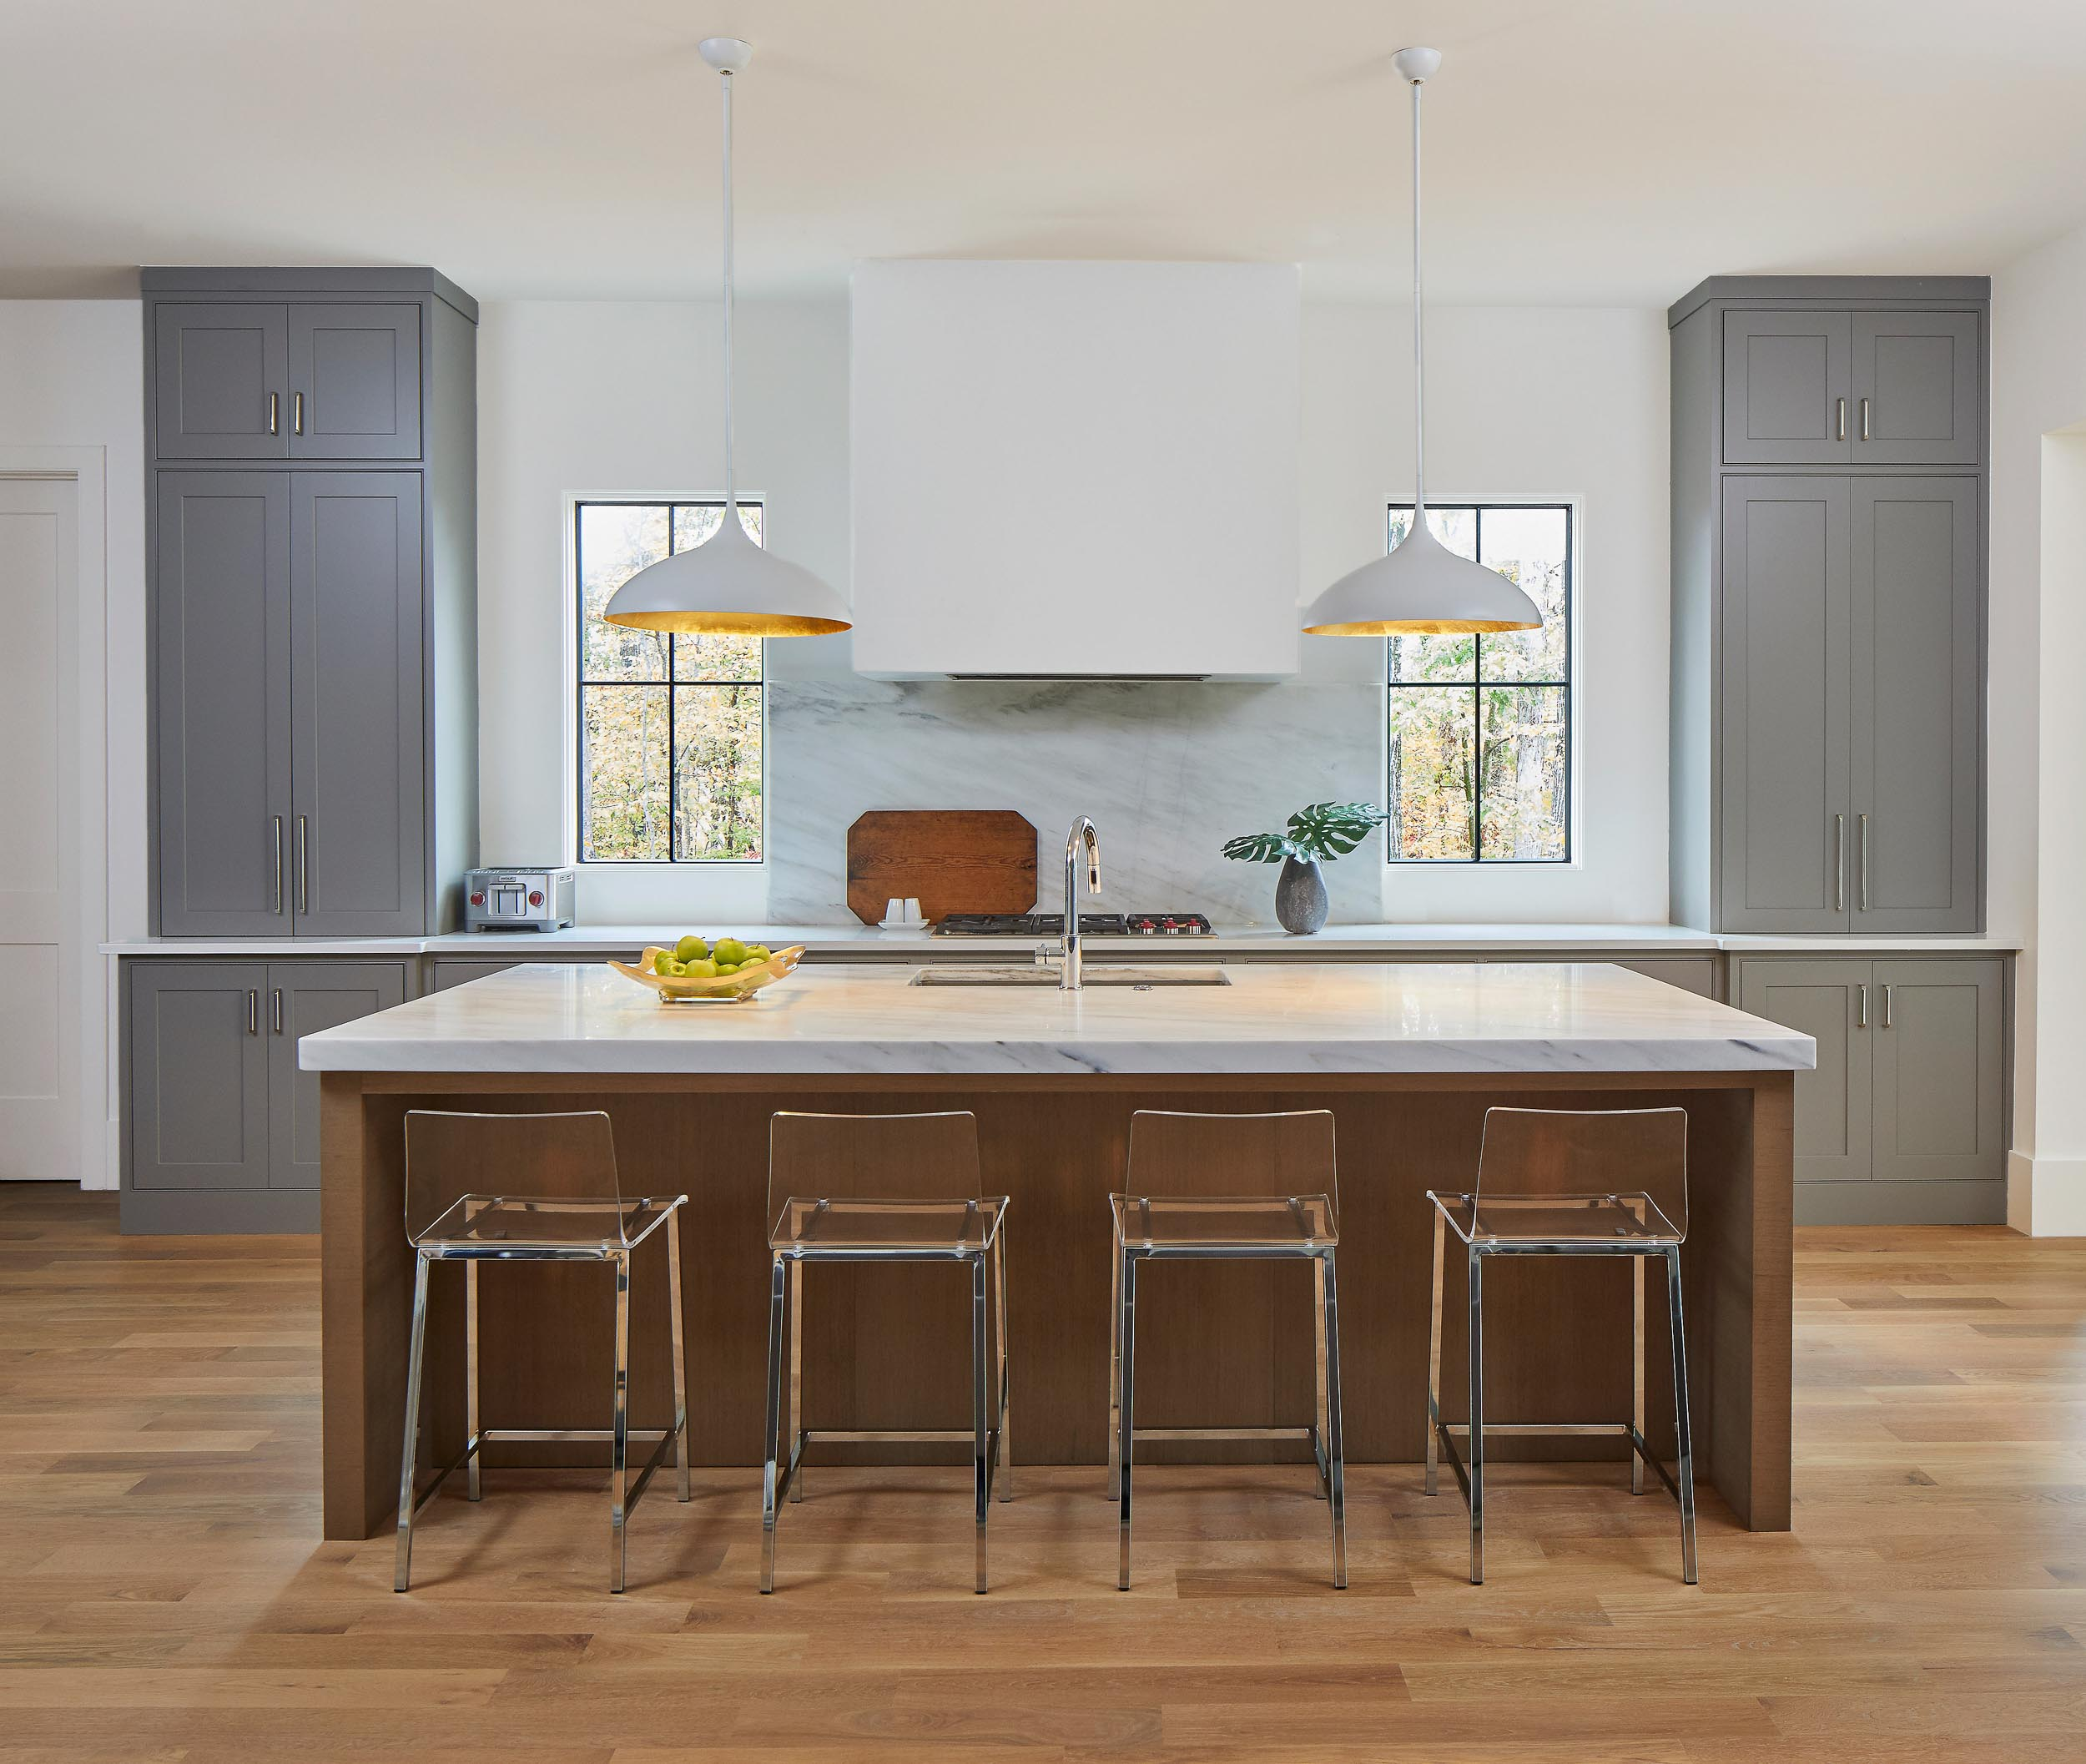 Alabama Kitchen Remodeling Gone Wrong: Our Avoidable